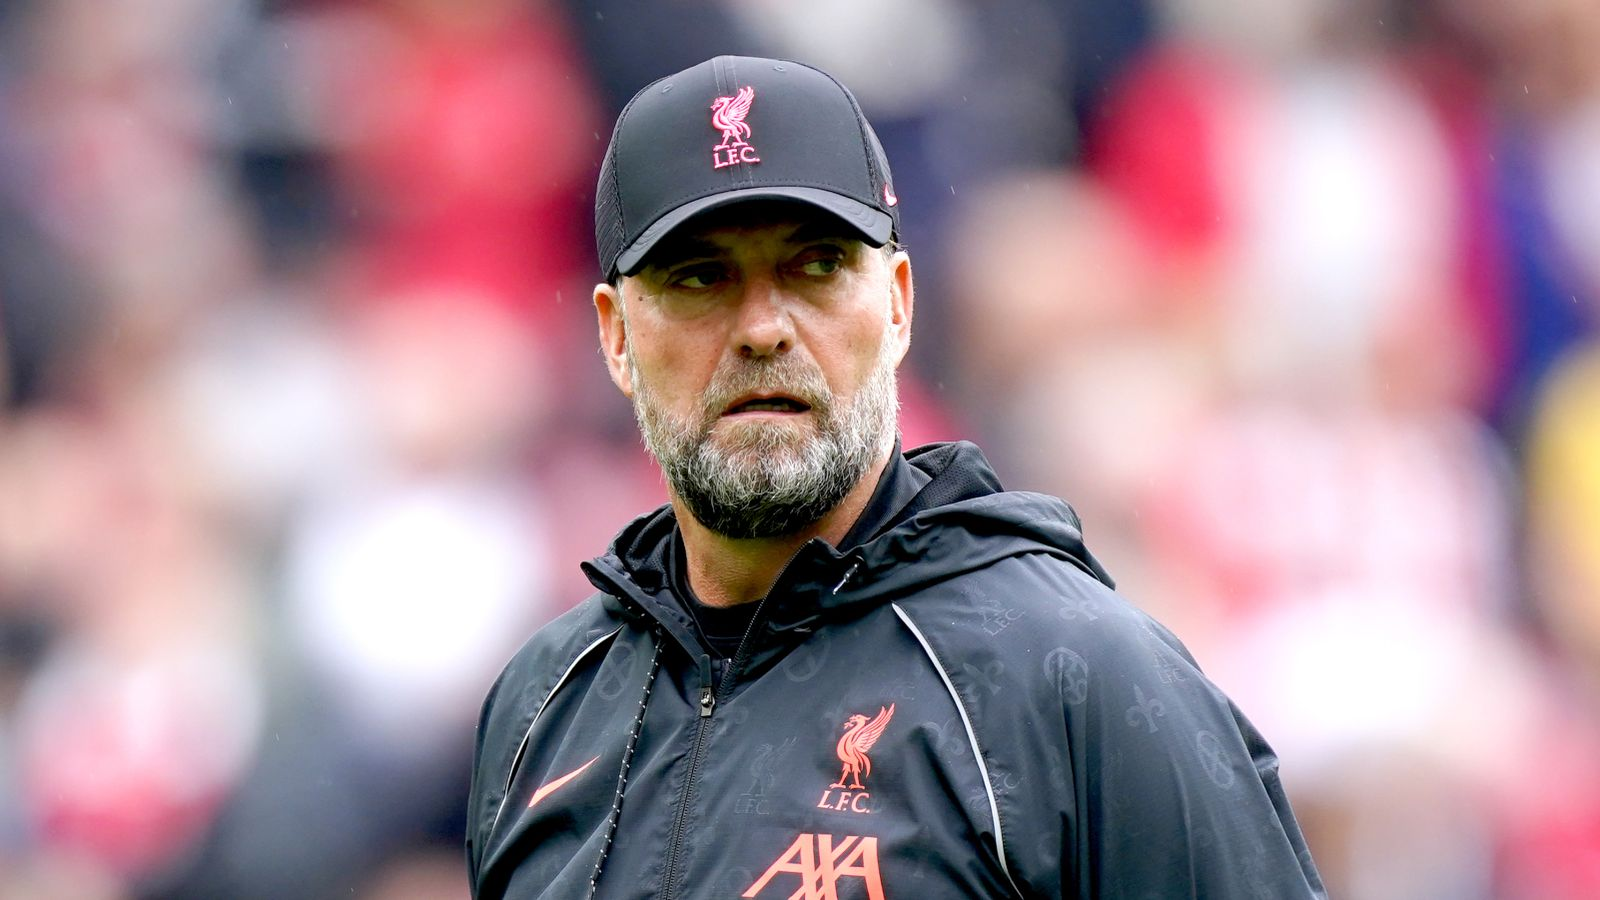 Newcastle new footballing 'superpower' after takeover, says Liverpool manager Jurgen Klopp